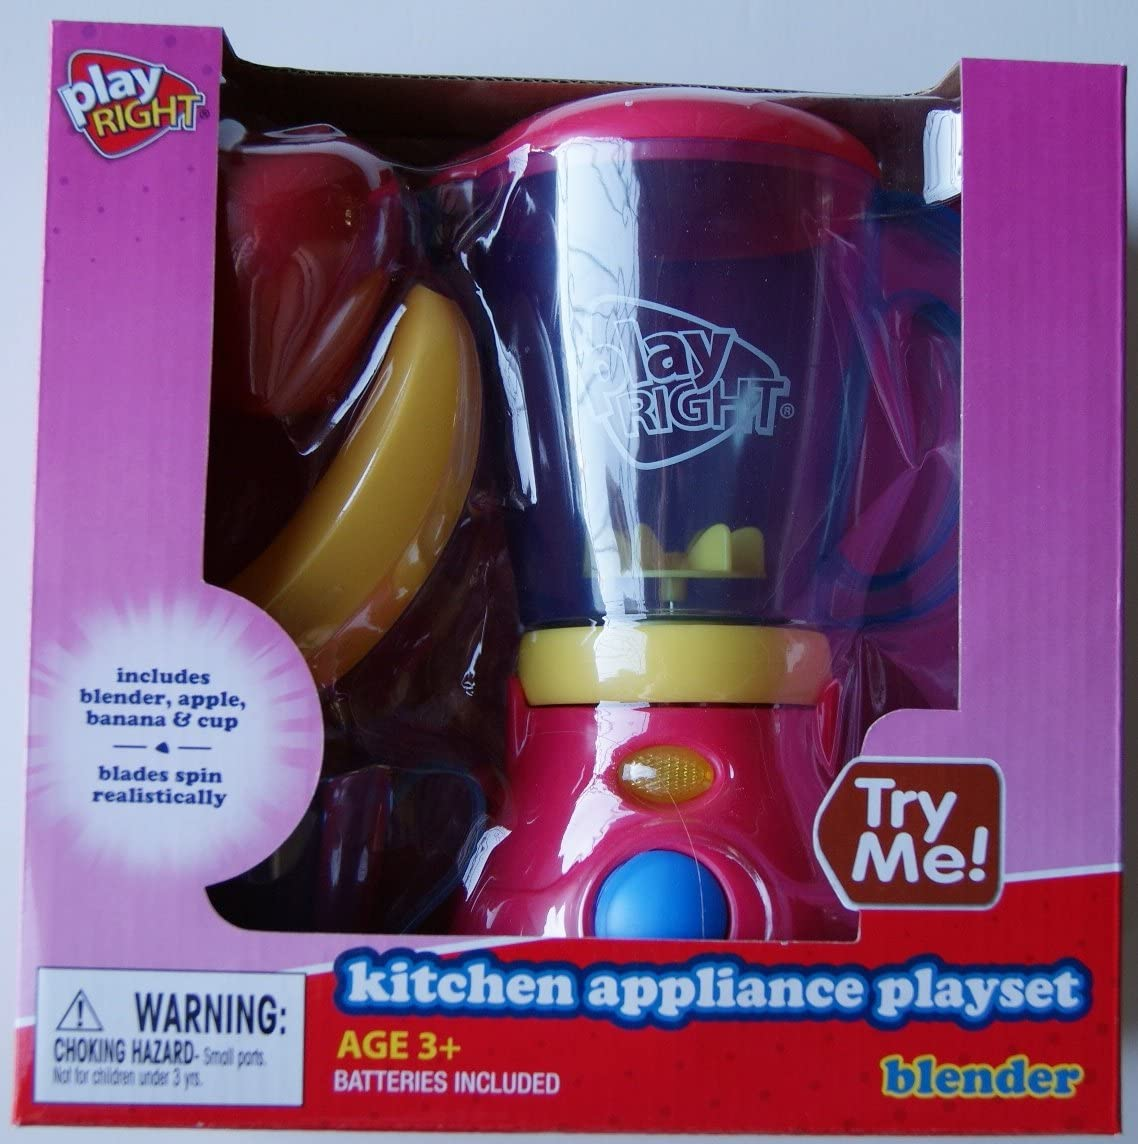 PlayRight Kitchen Appliance Blender & Food Playset